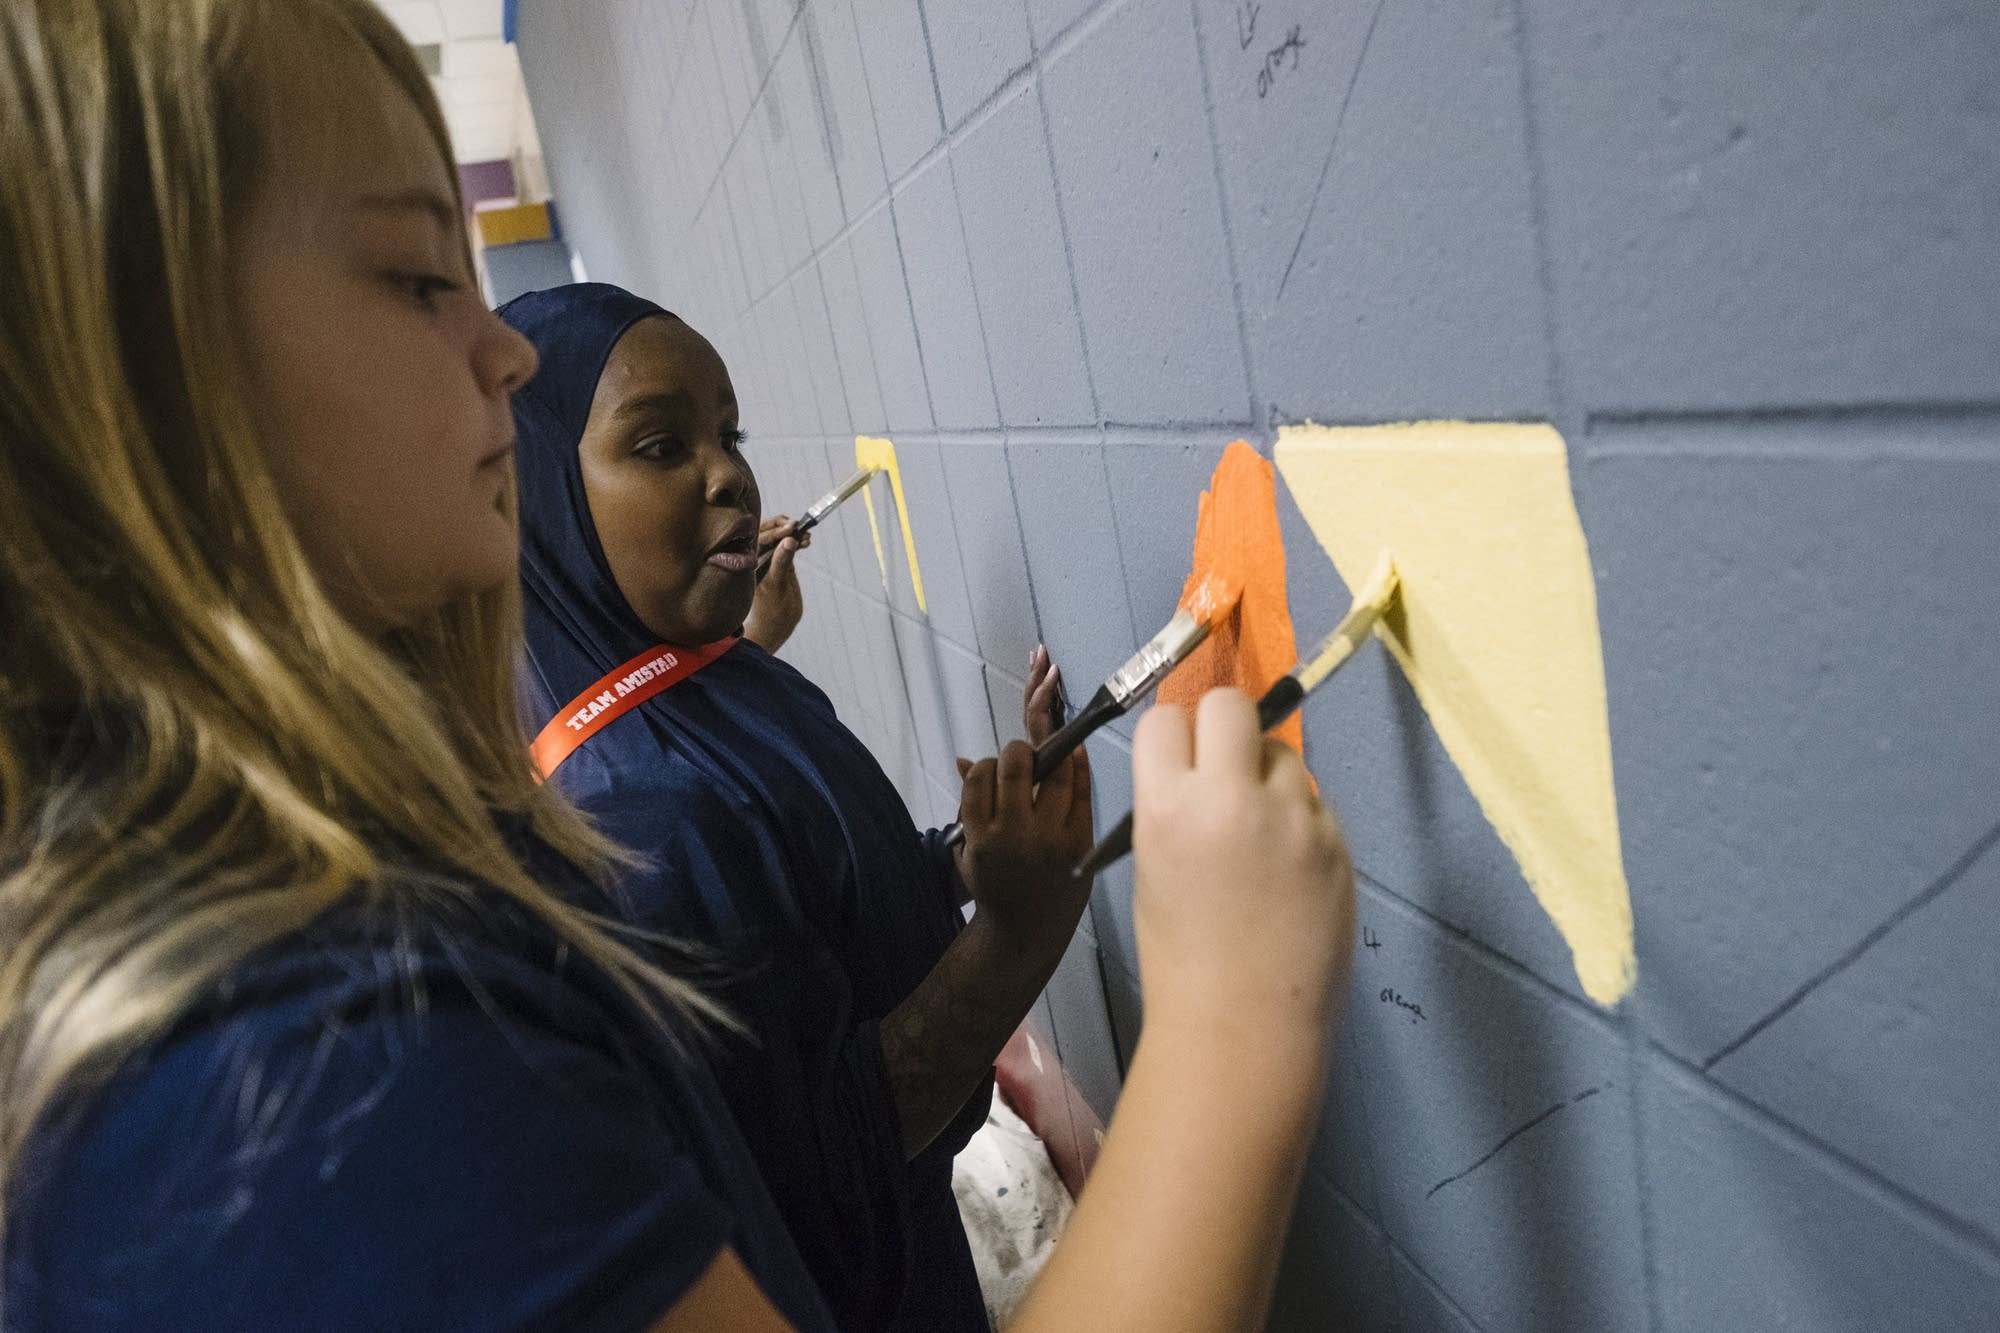 Jenny Lind students paint the mural together.